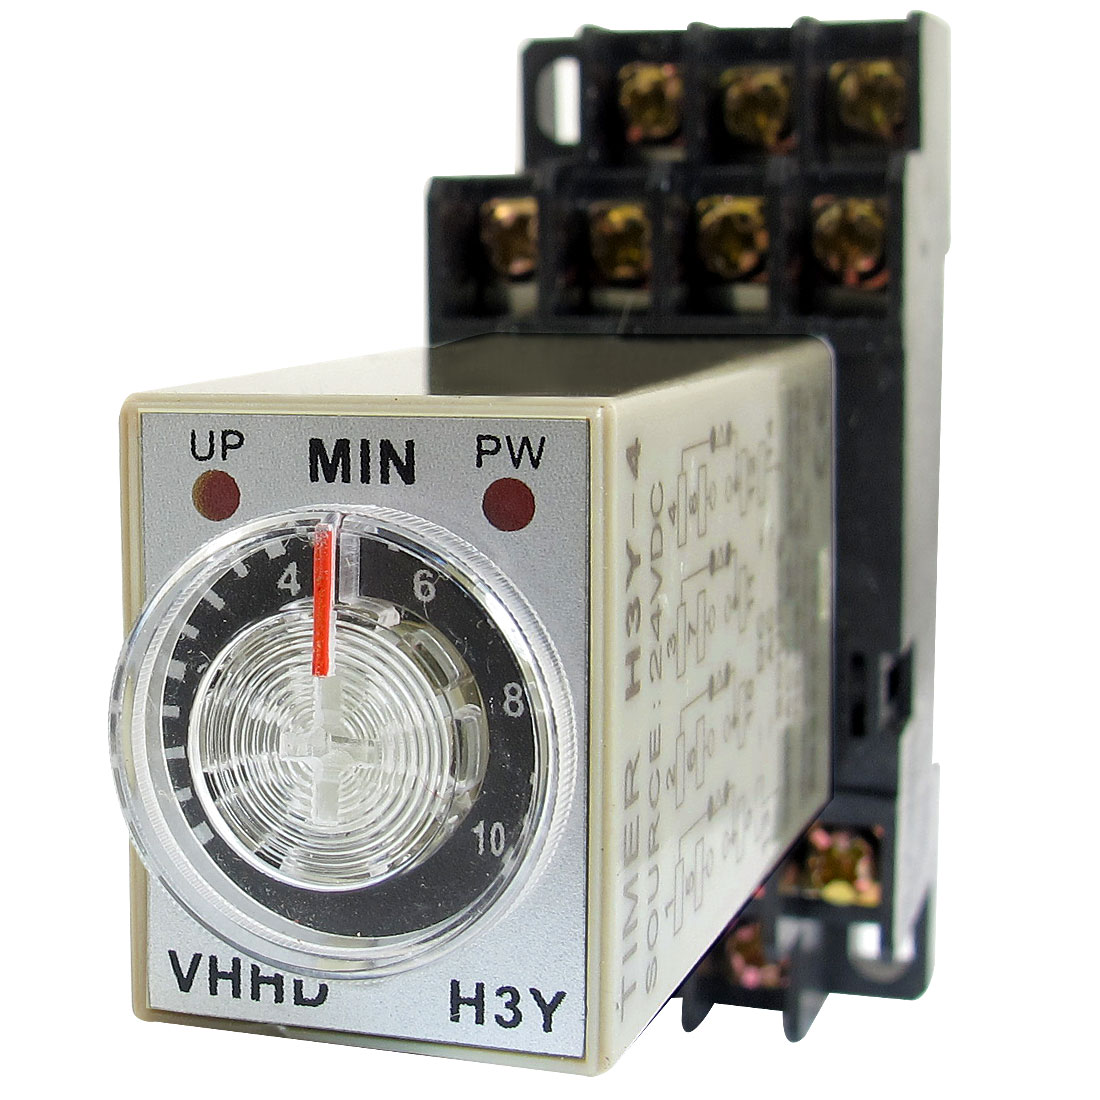 DC 24V 0-10 Minute 10m Timer Power On Delay Time Relay 14 Pin H3Y-4 + Socket